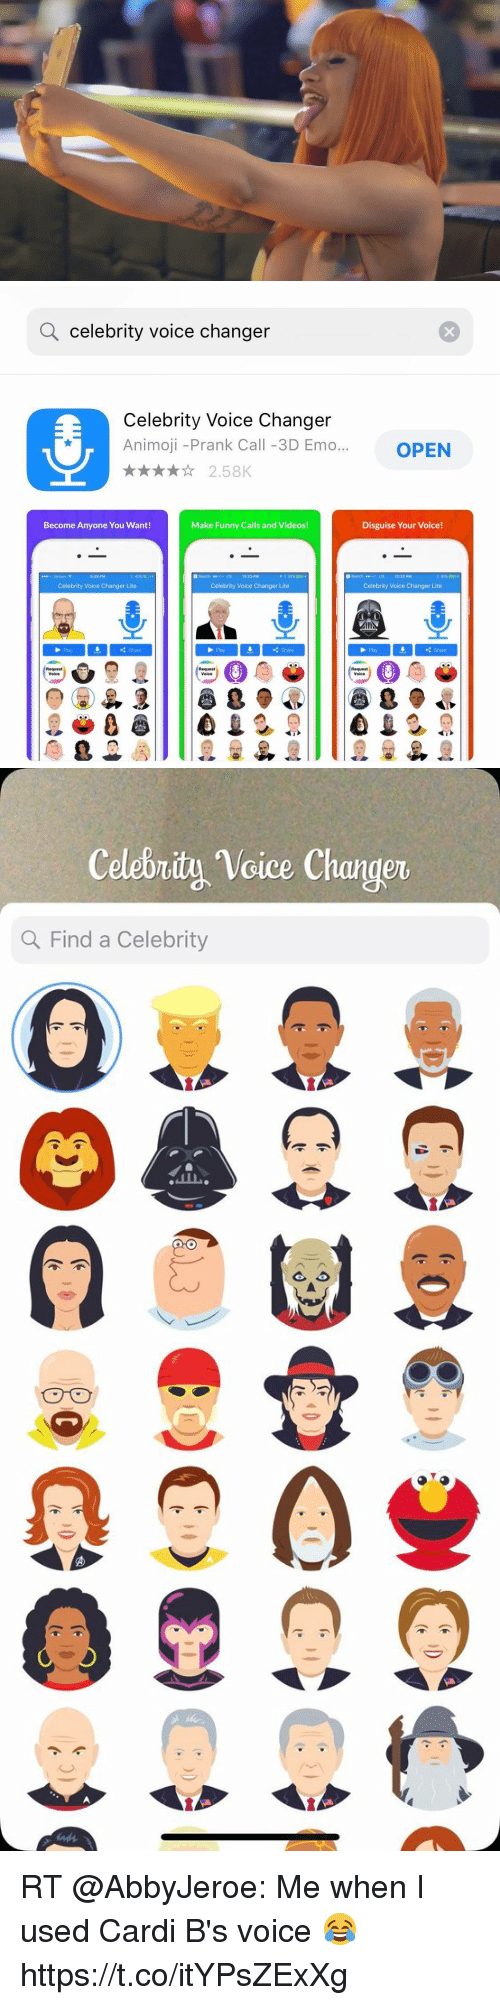 Emo, Funny, and Memes: Q celebrity voice changer  Celebrity Voice Changer  Animoji -Prank Call -3D Emo...OPEN  2.58K  Become Anyone You Want!  Make Funny Calls and Videos!  Disguise Your Voice!  5:29 PM  3 Search o06 LE 12:22 PM  3 Search seodo LTE 12:22 PM  Celebrity Voice Changer Lite  Celebrity Voice Changer Lite  Celebrity Voice Changer Lite  Play  Share  Play  Share  Pay  Share  Request  Request  Voice  Request   Celebrity Voice Changer  Q Find a Celebrity  0 RT @AbbyJeroe: Me when I used Cardi B's voice 😂 https://t.co/itYPsZExXg